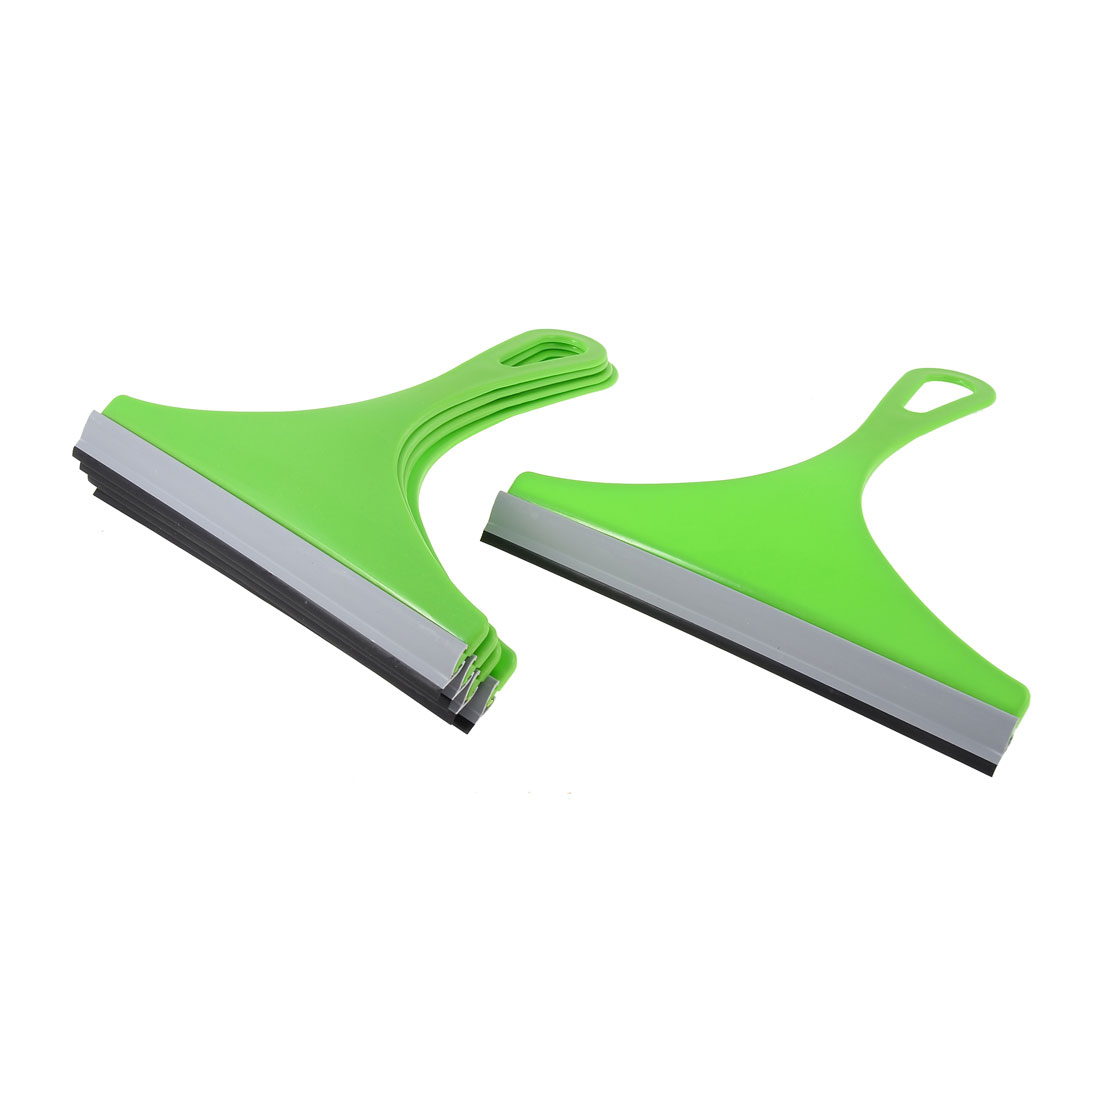 Bathroom Car Auto Window Glass Mirror Brush Cleaner Wiper Squeegee Green 5pcs